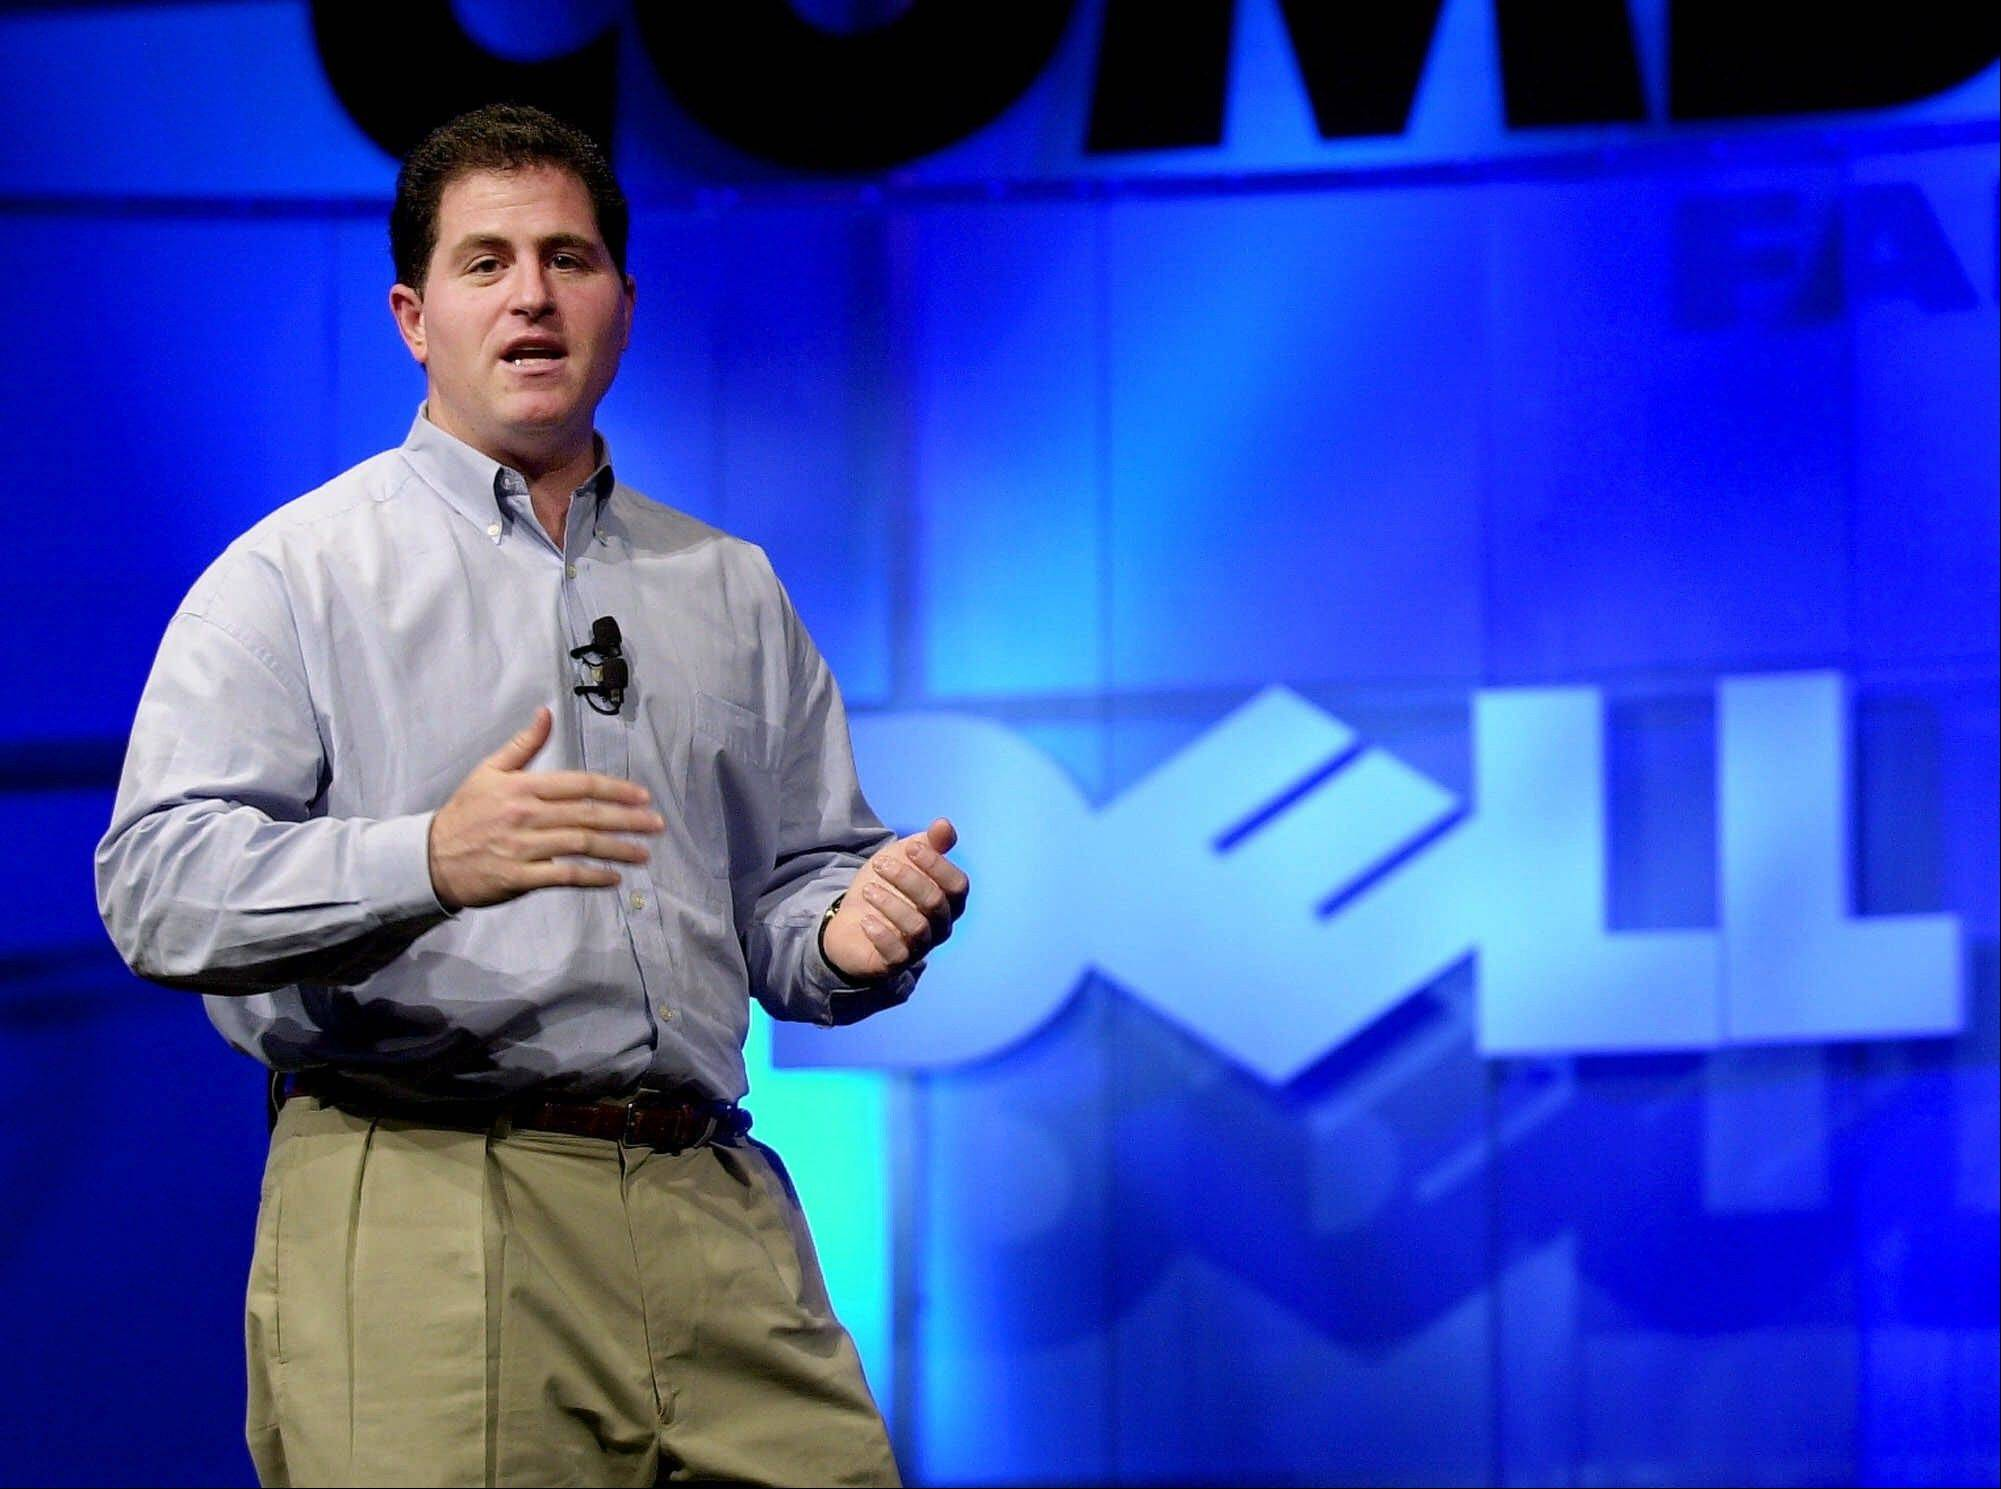 Michael Dell, Chairman and CEO of Dell, speaks during his keynote address at Comdex, in Las Vegas. It�s easy to forget now, but Michael Dell was the Mark Zuckerberg of his time. Hailed as a young genius, he created the inexpensive, made-to-order personal computer in his dorm room and peddled it to the masses, but now the PC is being eclipsed by smartphones and tablet computers, and Dell is trying to save his company.